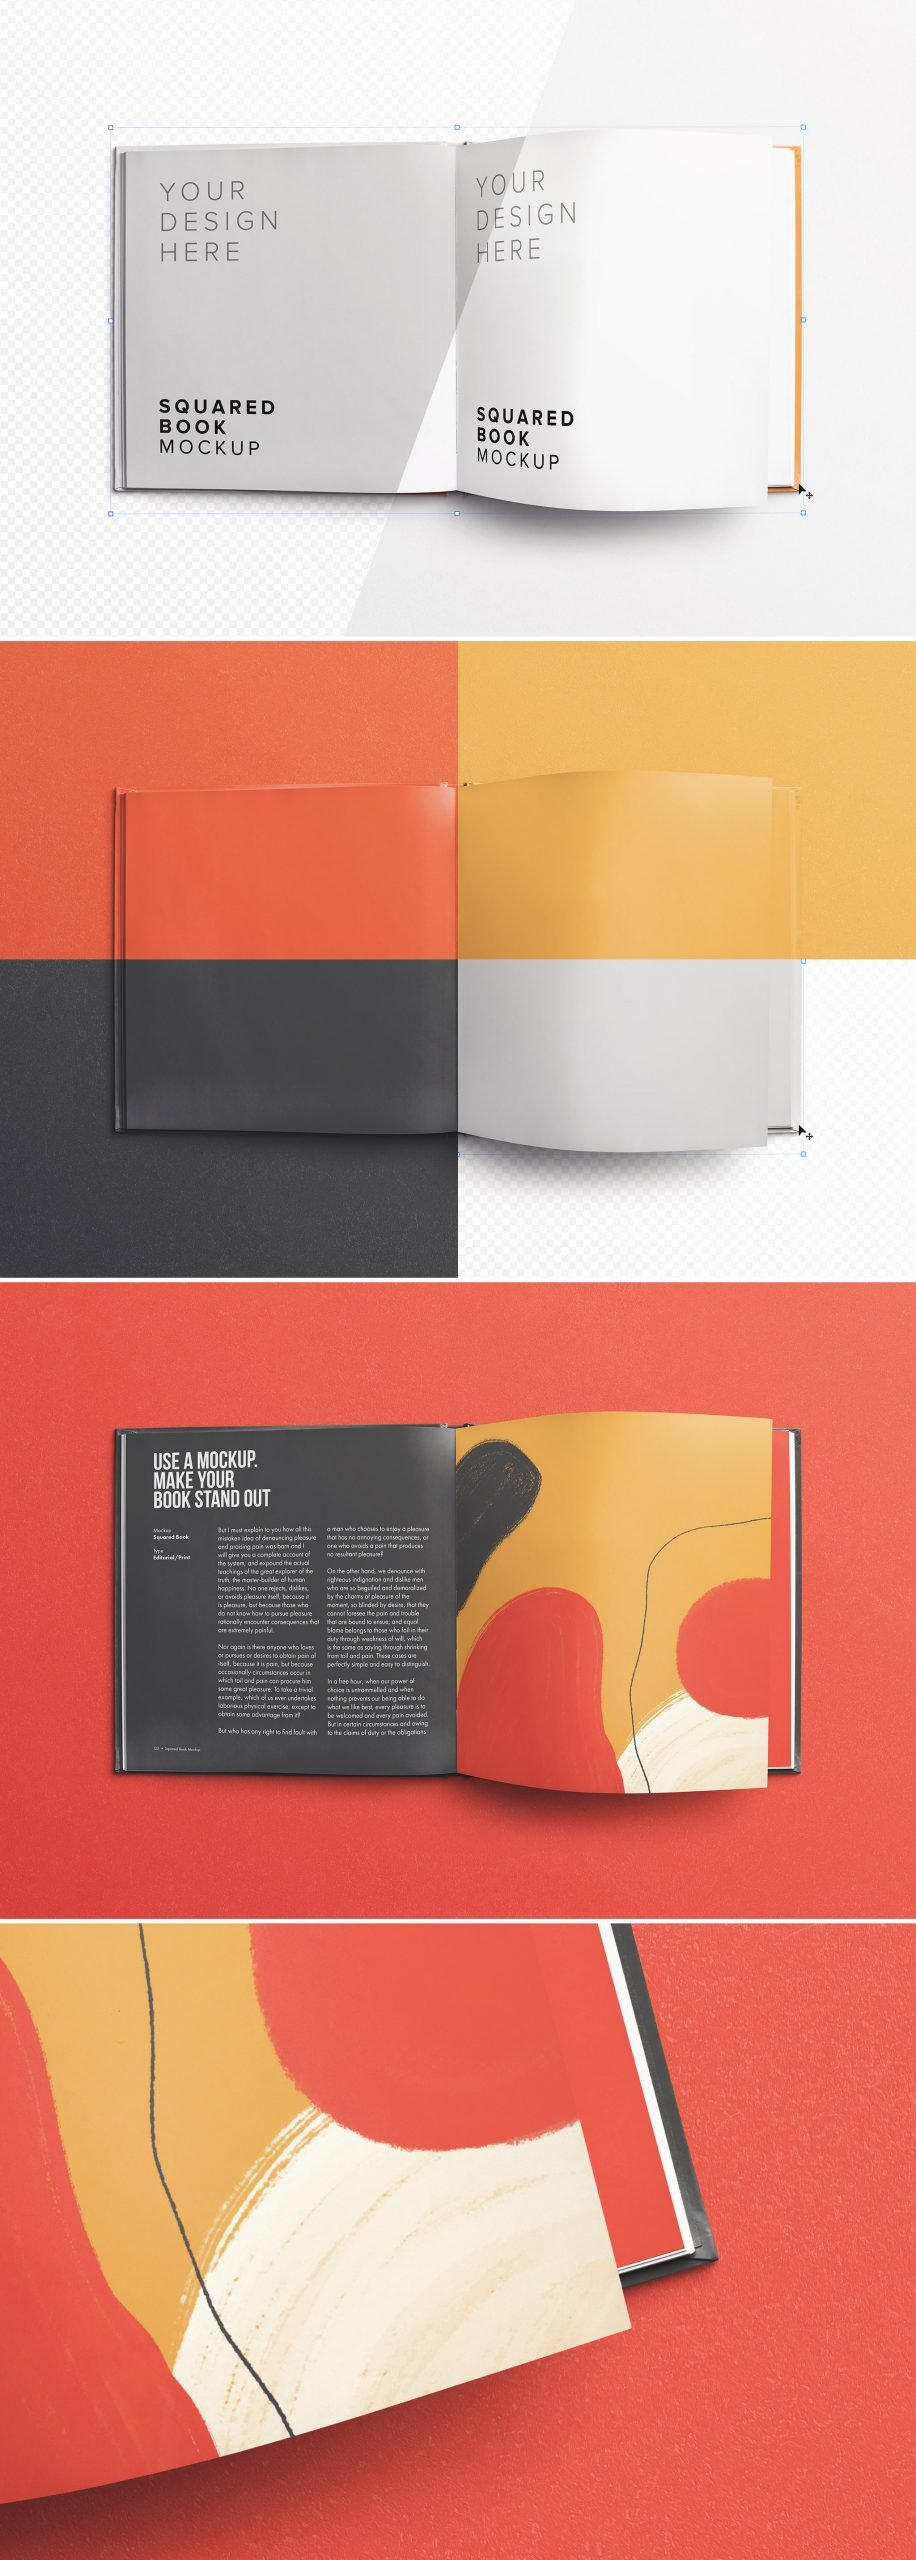 book squared opened right 2 page mockup Preview1 scaled